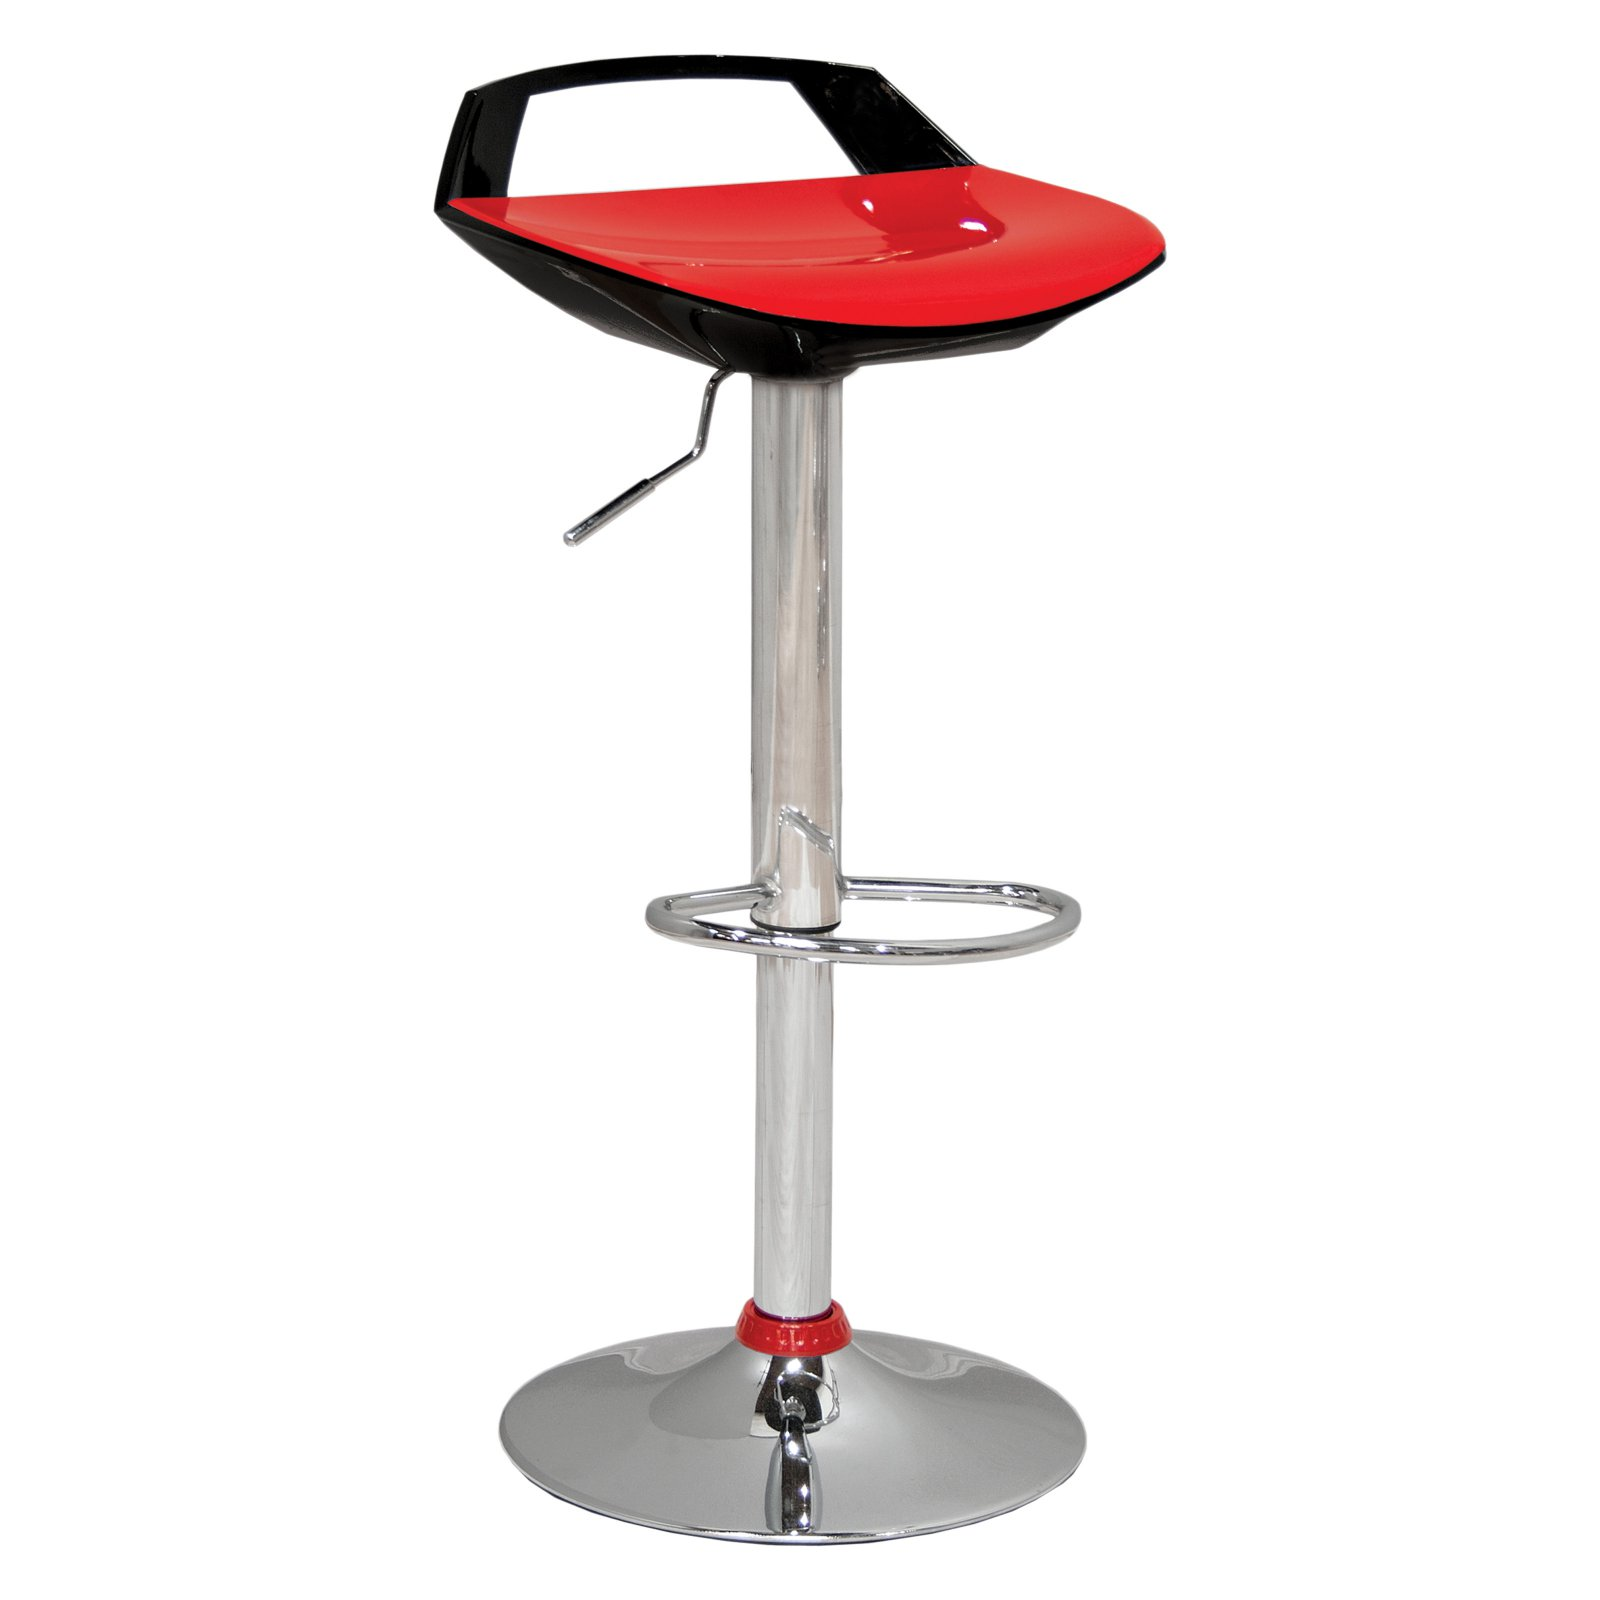 Strange Best Master Furniture Low Rise Back Adjustable Height Bar Stool Set Of 2 Black White Or Black Red Gmtry Best Dining Table And Chair Ideas Images Gmtryco